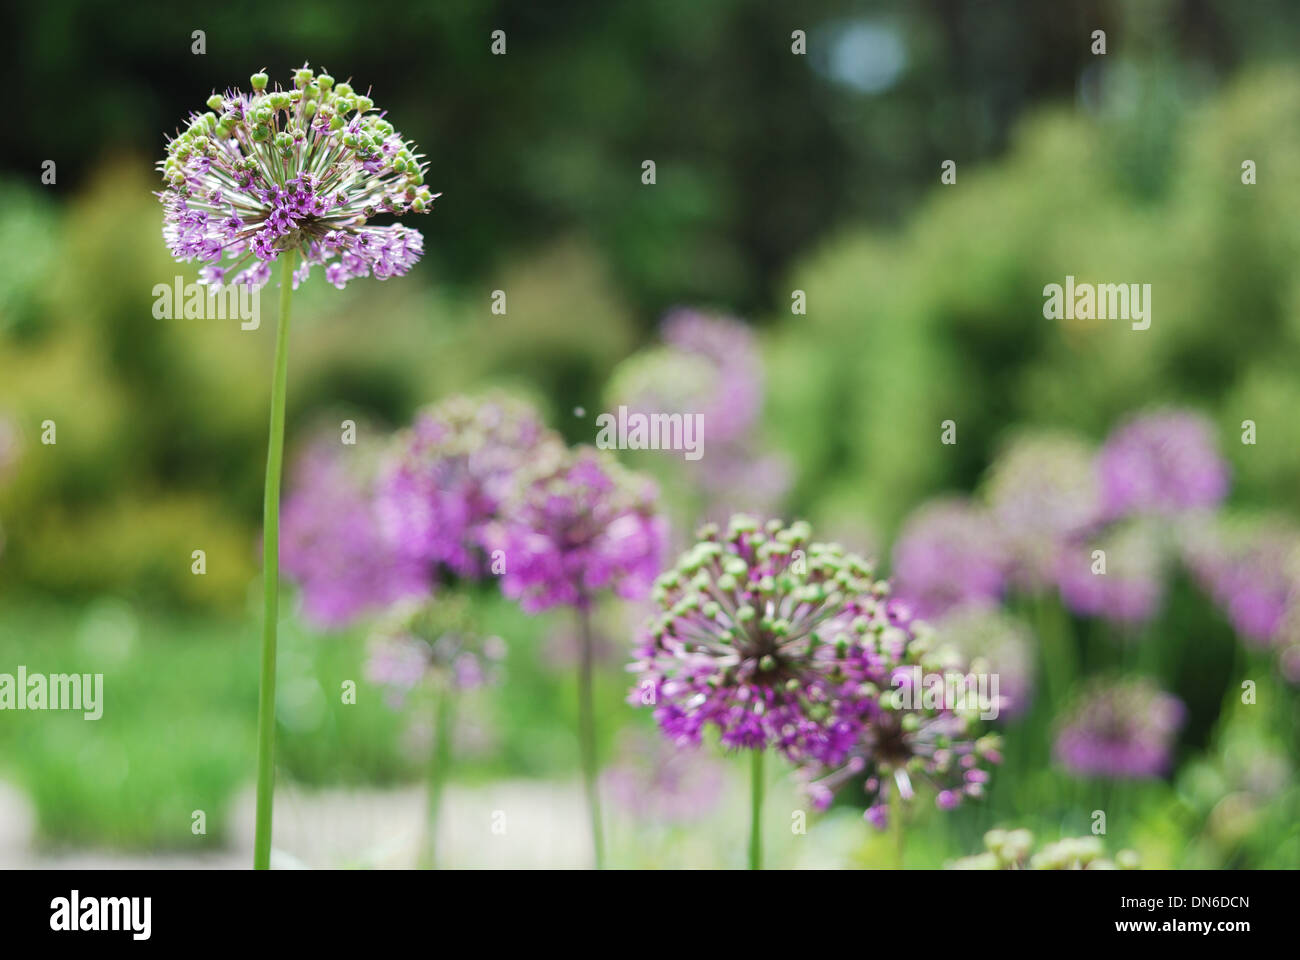 Round violet inflorescences against the blurred green garden Stock Photo